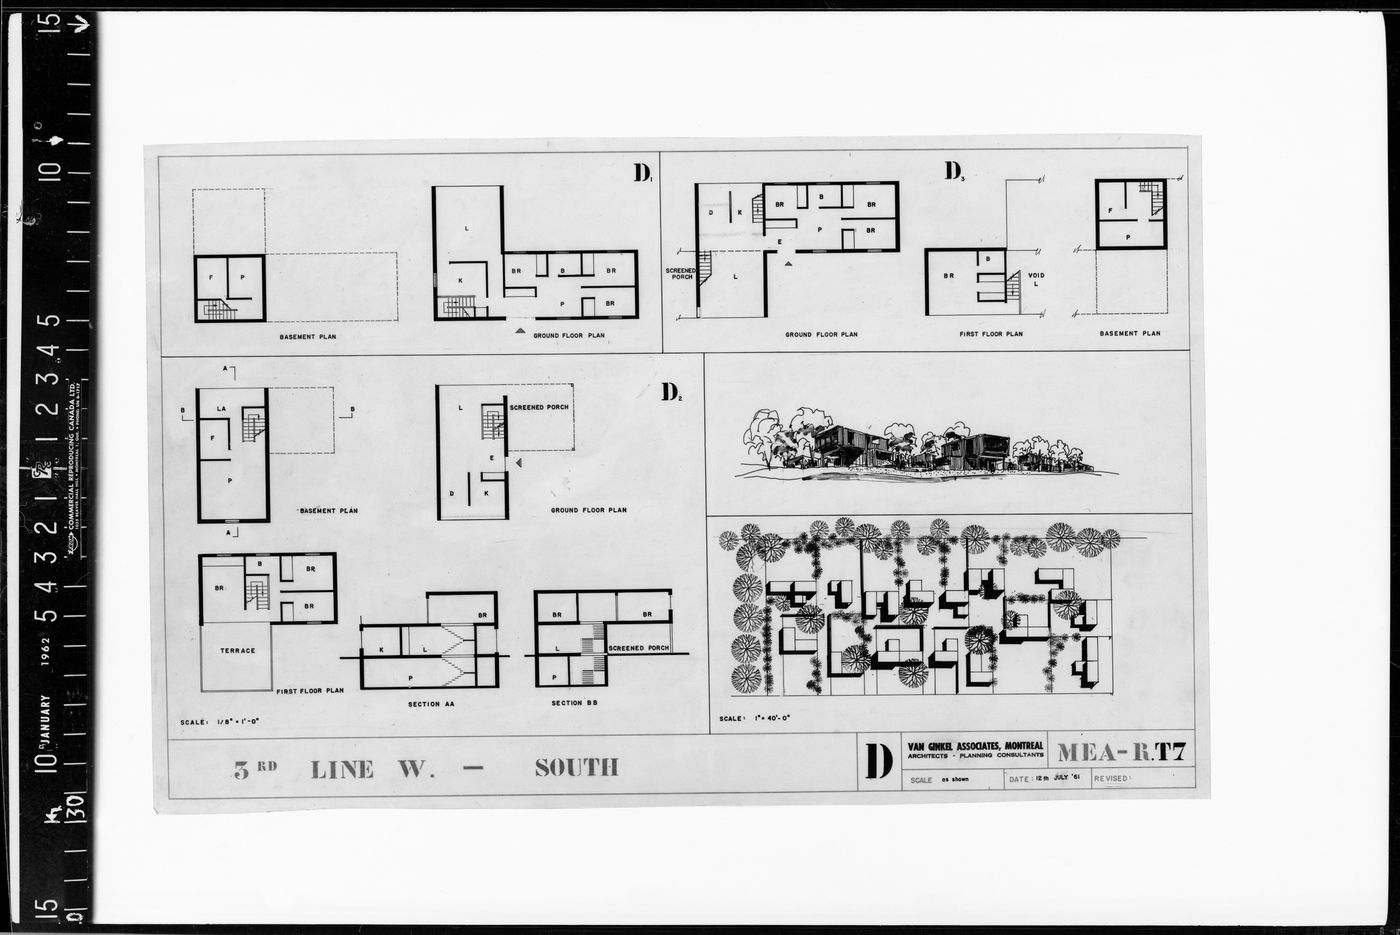 Plans for Meadowvale, Mississauga, Ontario, Canada